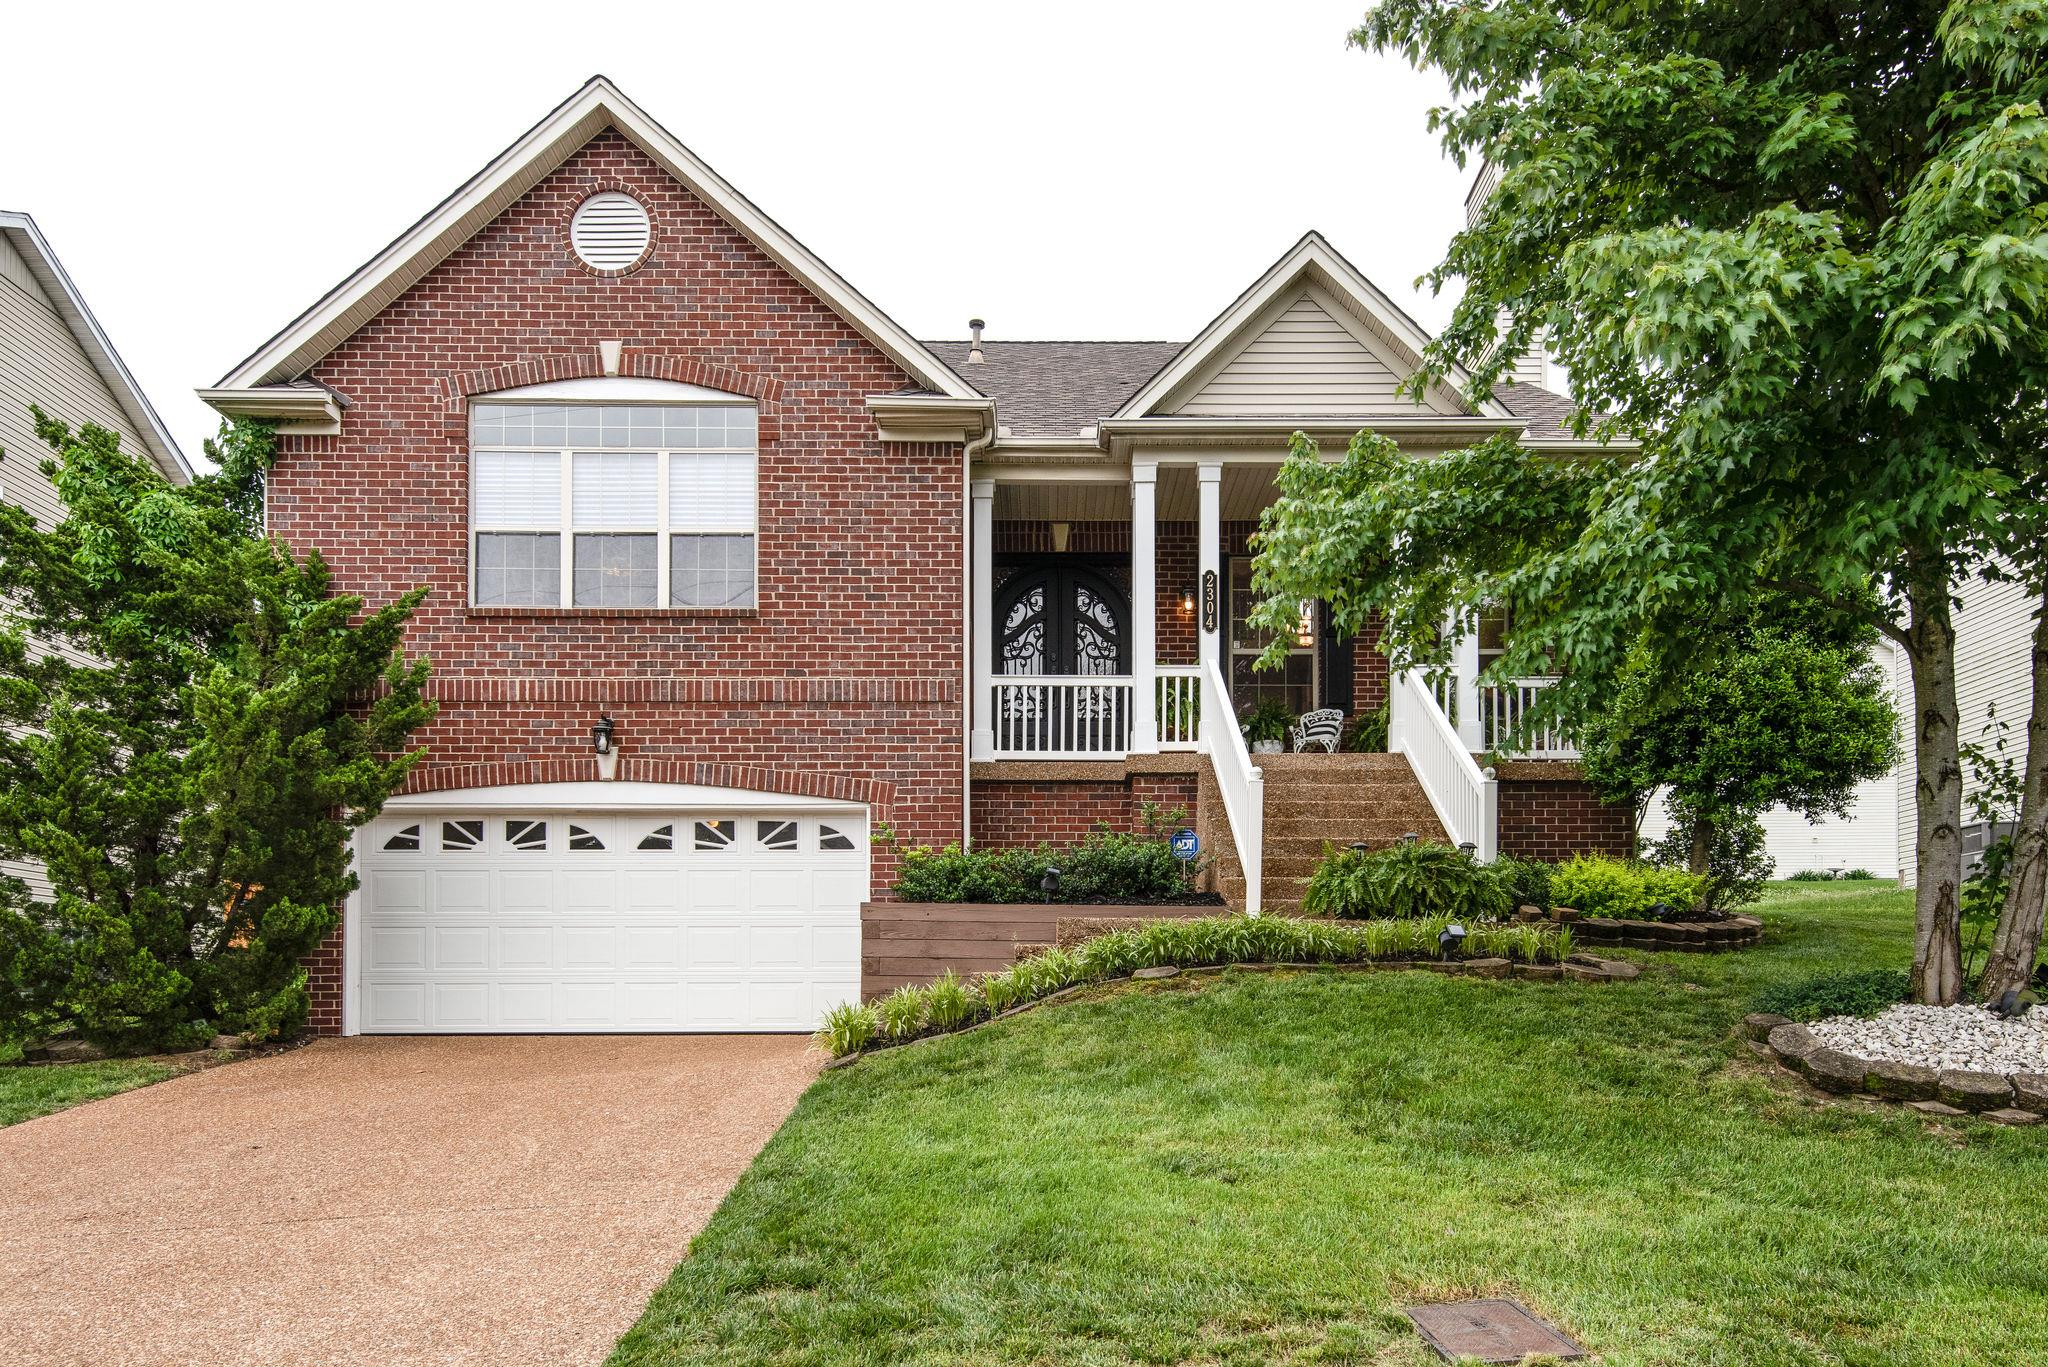 2304 Edencrest Dr, Nashville-Antioch, Tennessee